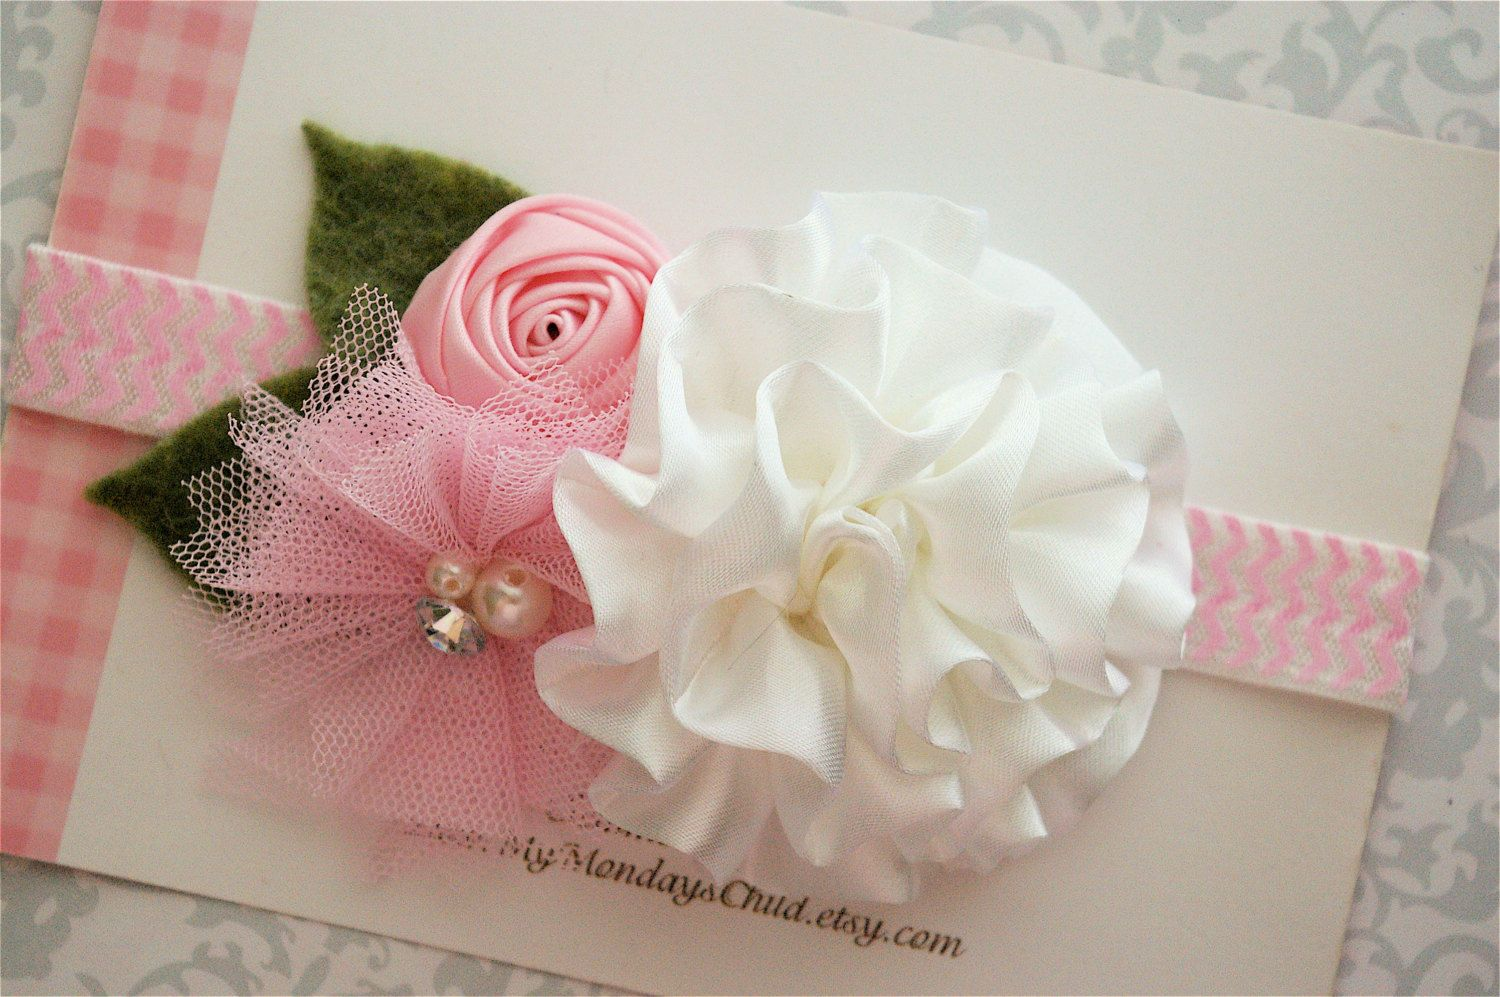 This satin and tulle flower headband is adorable! The white ruffled satin flower has lots of softly gathered layers with a pink satin rosette and tulle flower with a pearl and rhinestone center! The flowers are attached to a 5/8 inch elastic pink chevron headband and are backed with felt. Two wool felt leafs are tucked into the side. Sweet for girls of all ages and perfect with the Matilda Jane Good Hart collection and so many little outfits! This item can also be made into a hair clip or…